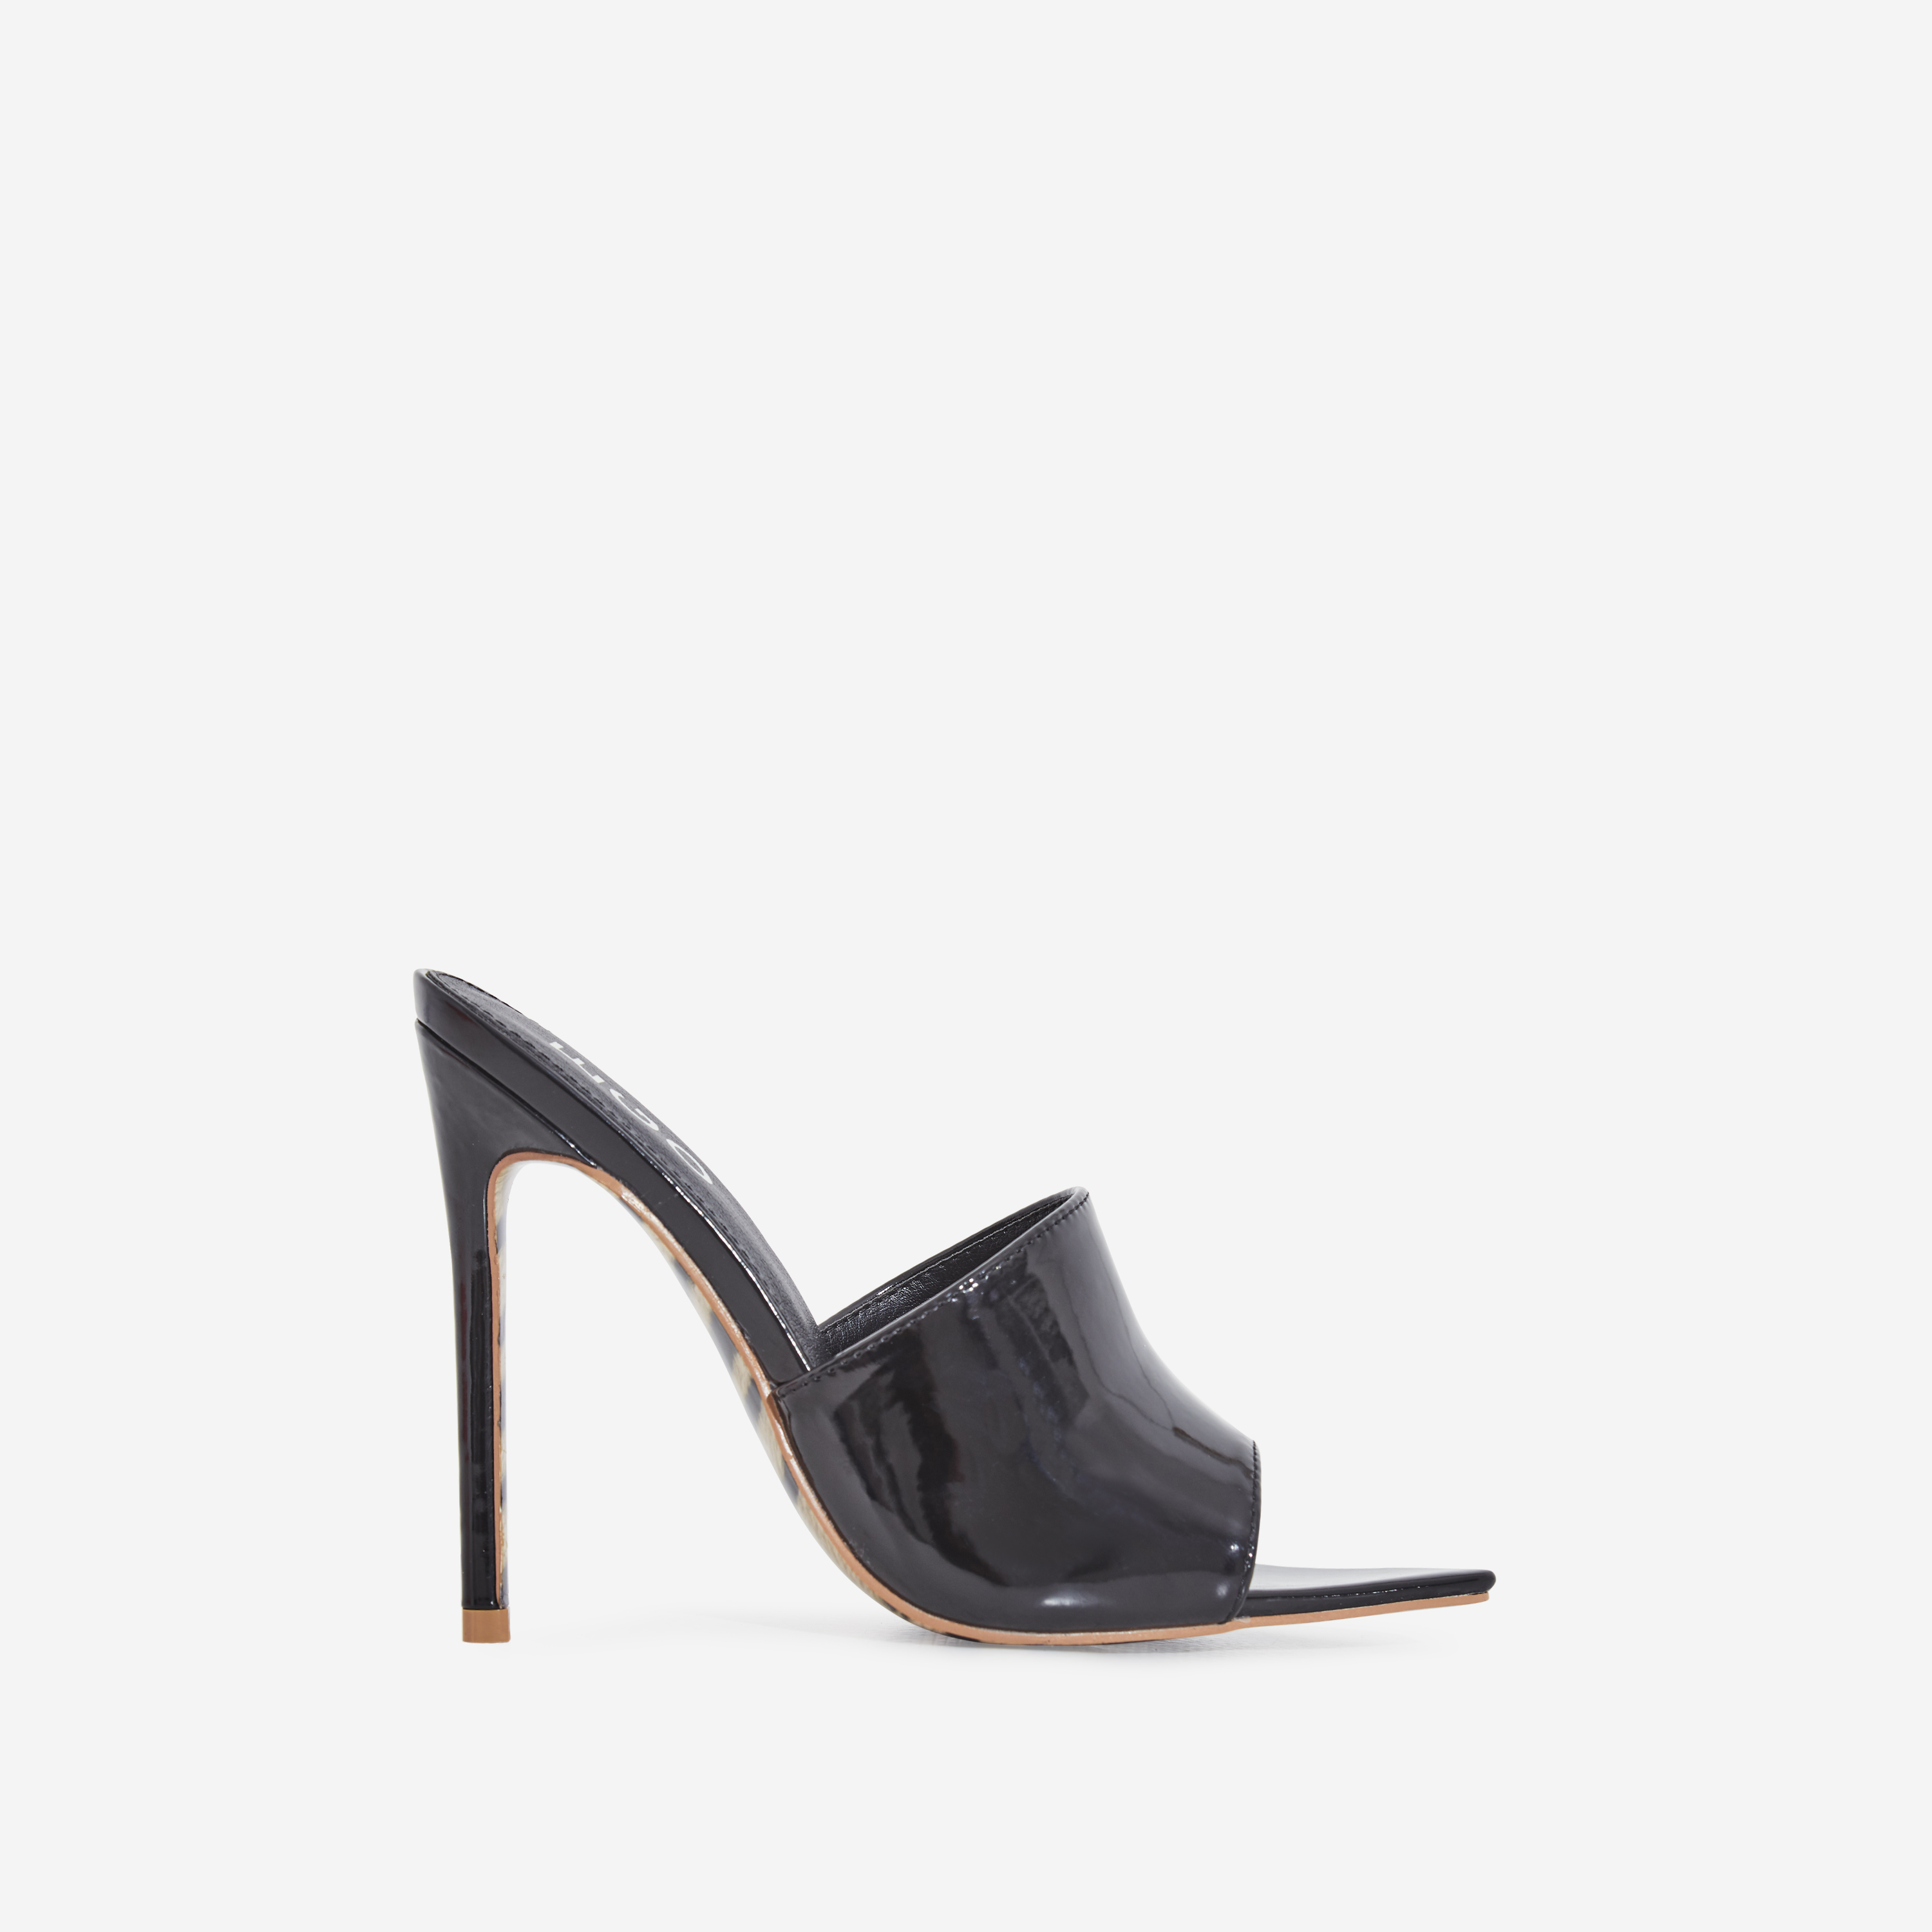 Koko Tiger Print Sole Pointed Peep Toe Mule In Black Patent